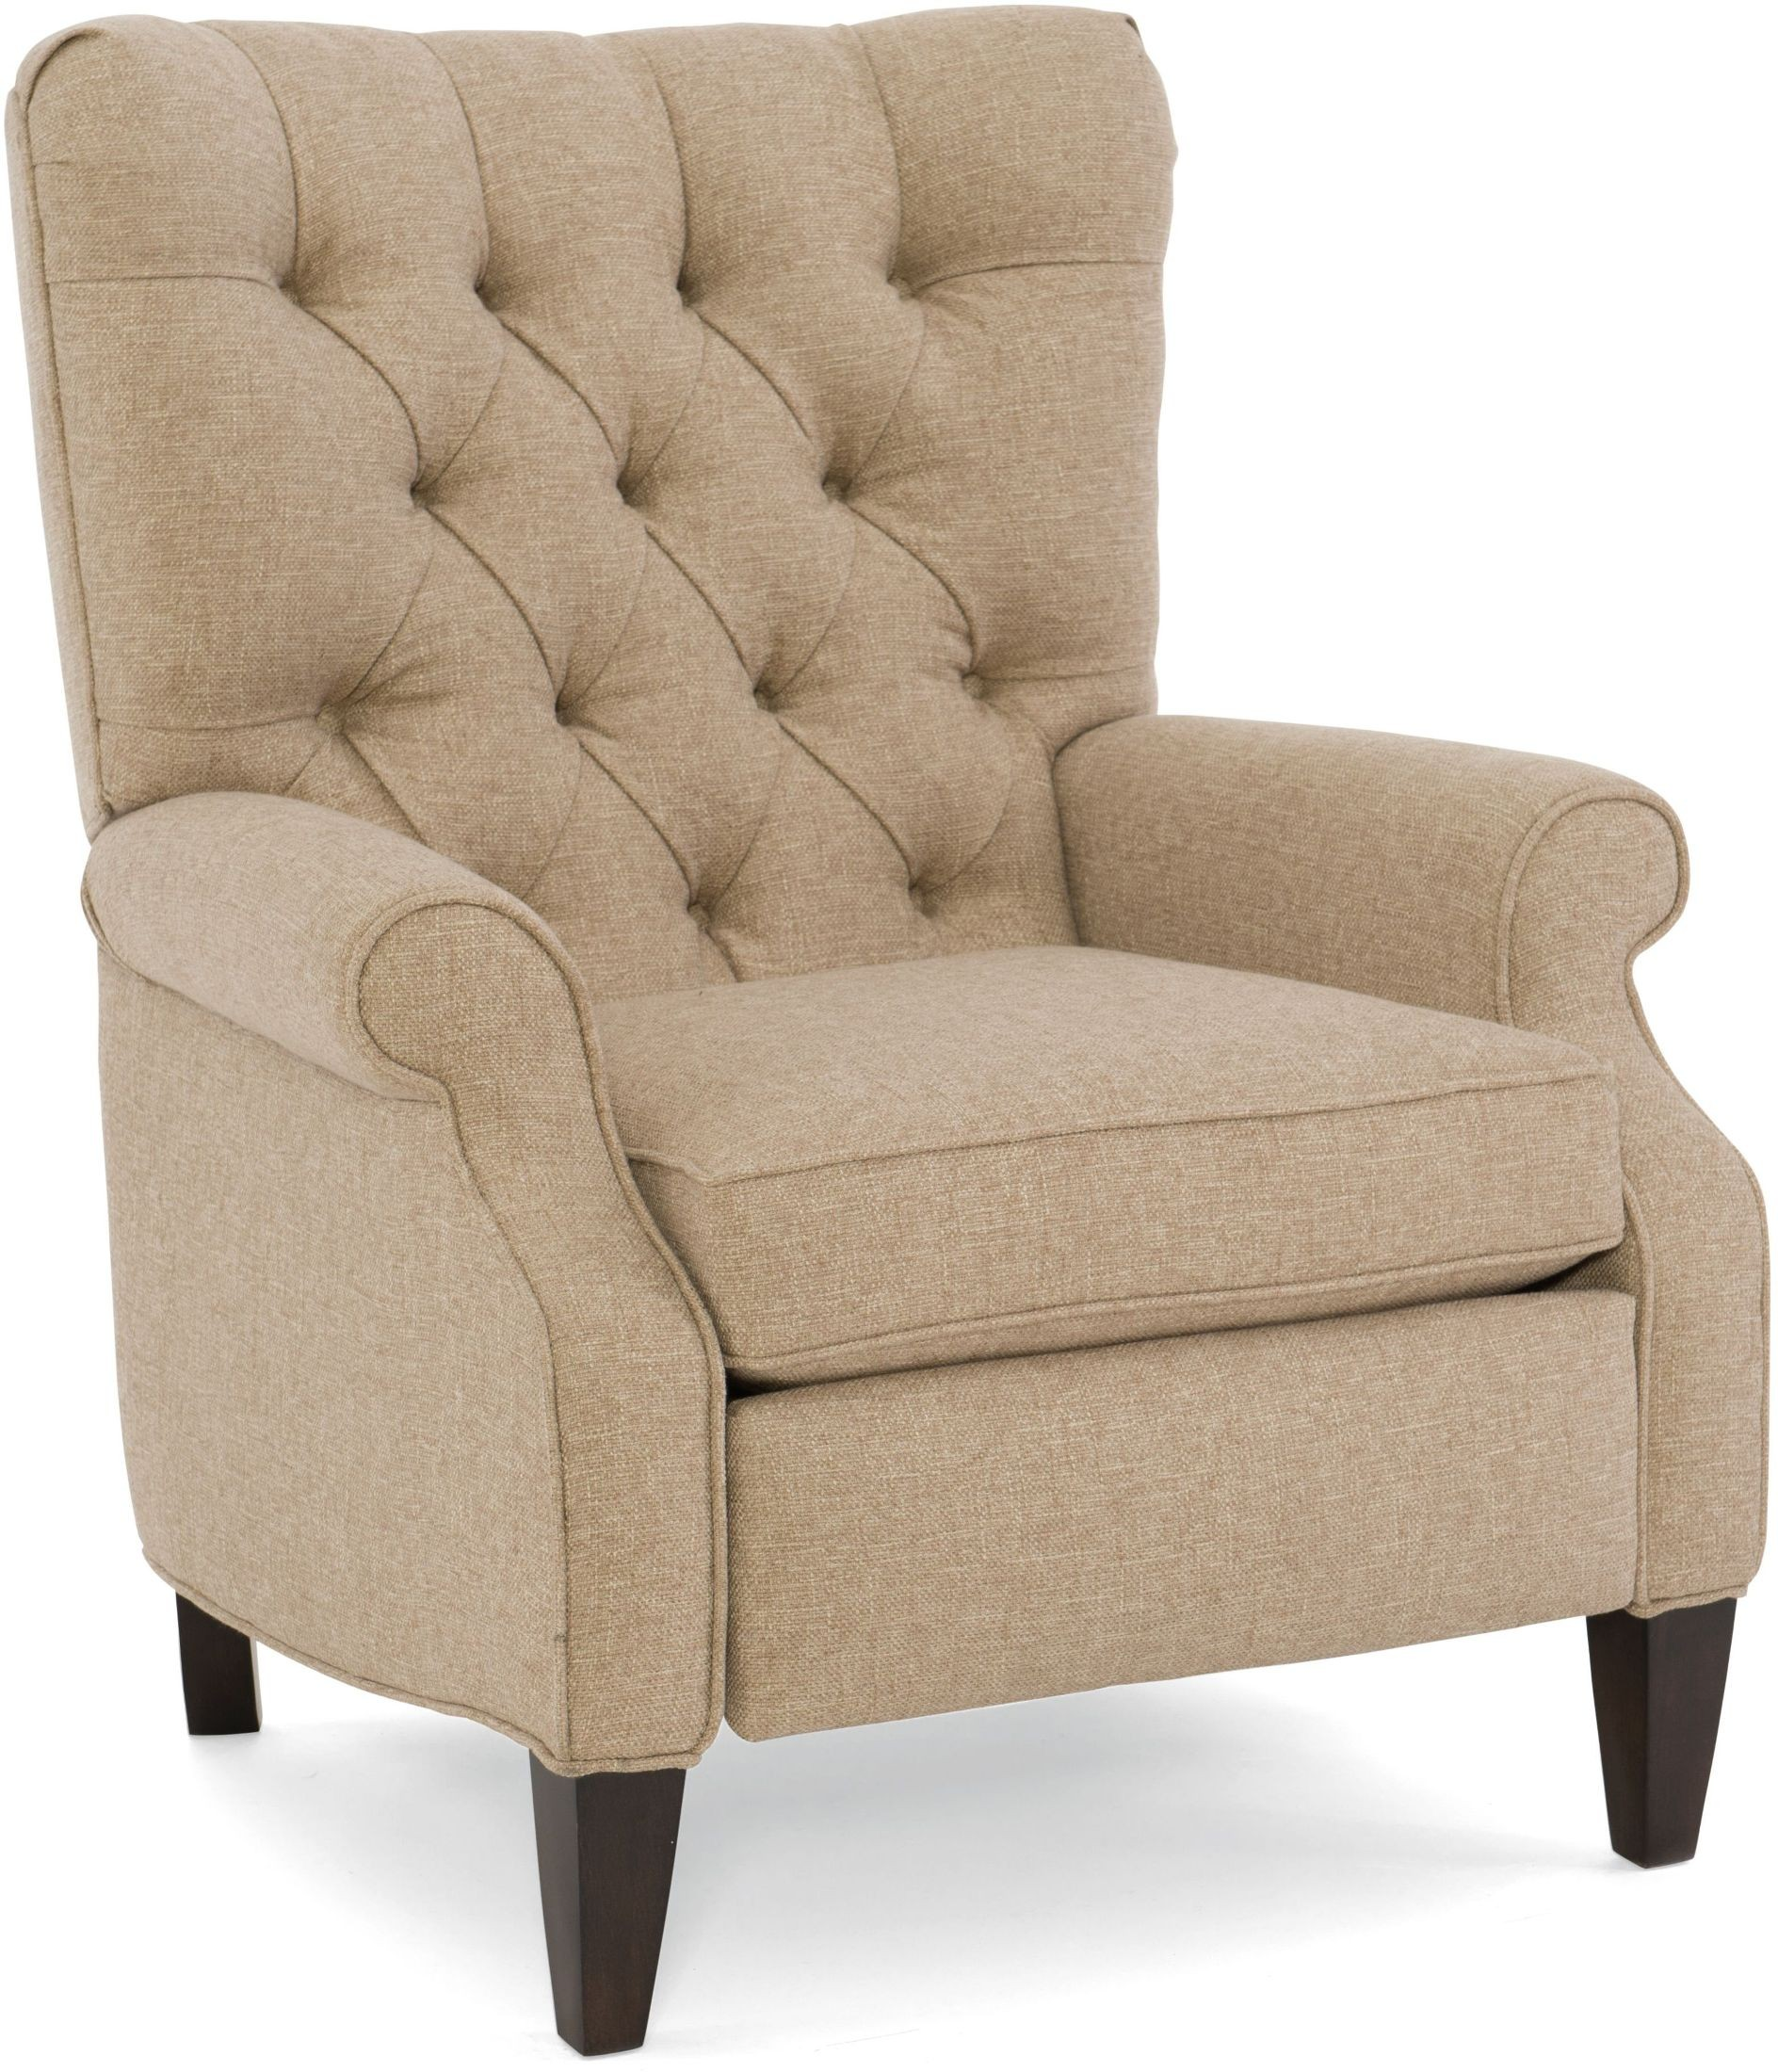 Annick Beige Recliner By Sam Moore Smx 5910400068 08pali